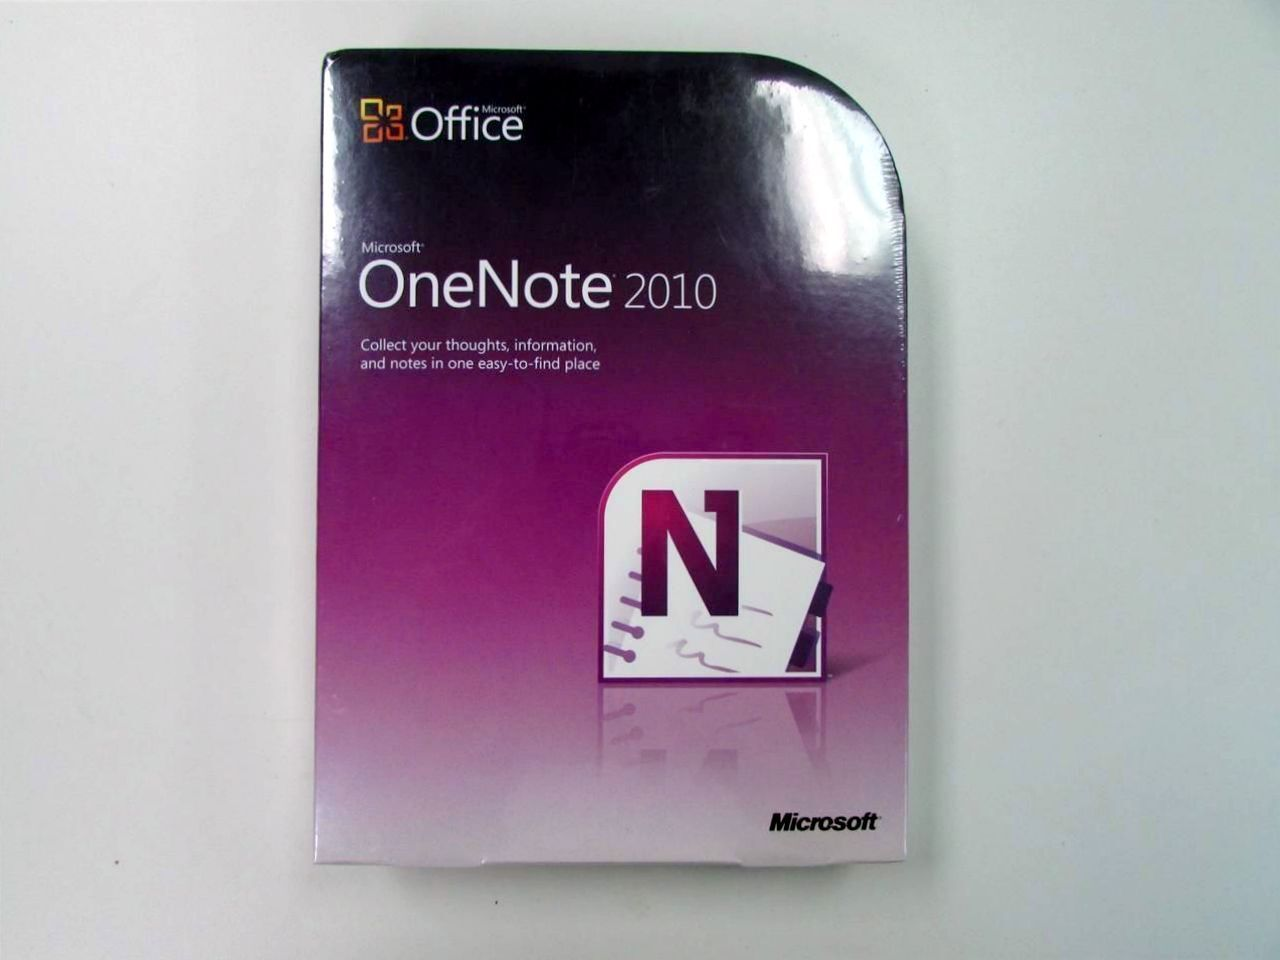 Microsoft Office Onenote 2010 Retail Box Sku: S26-04133 S...